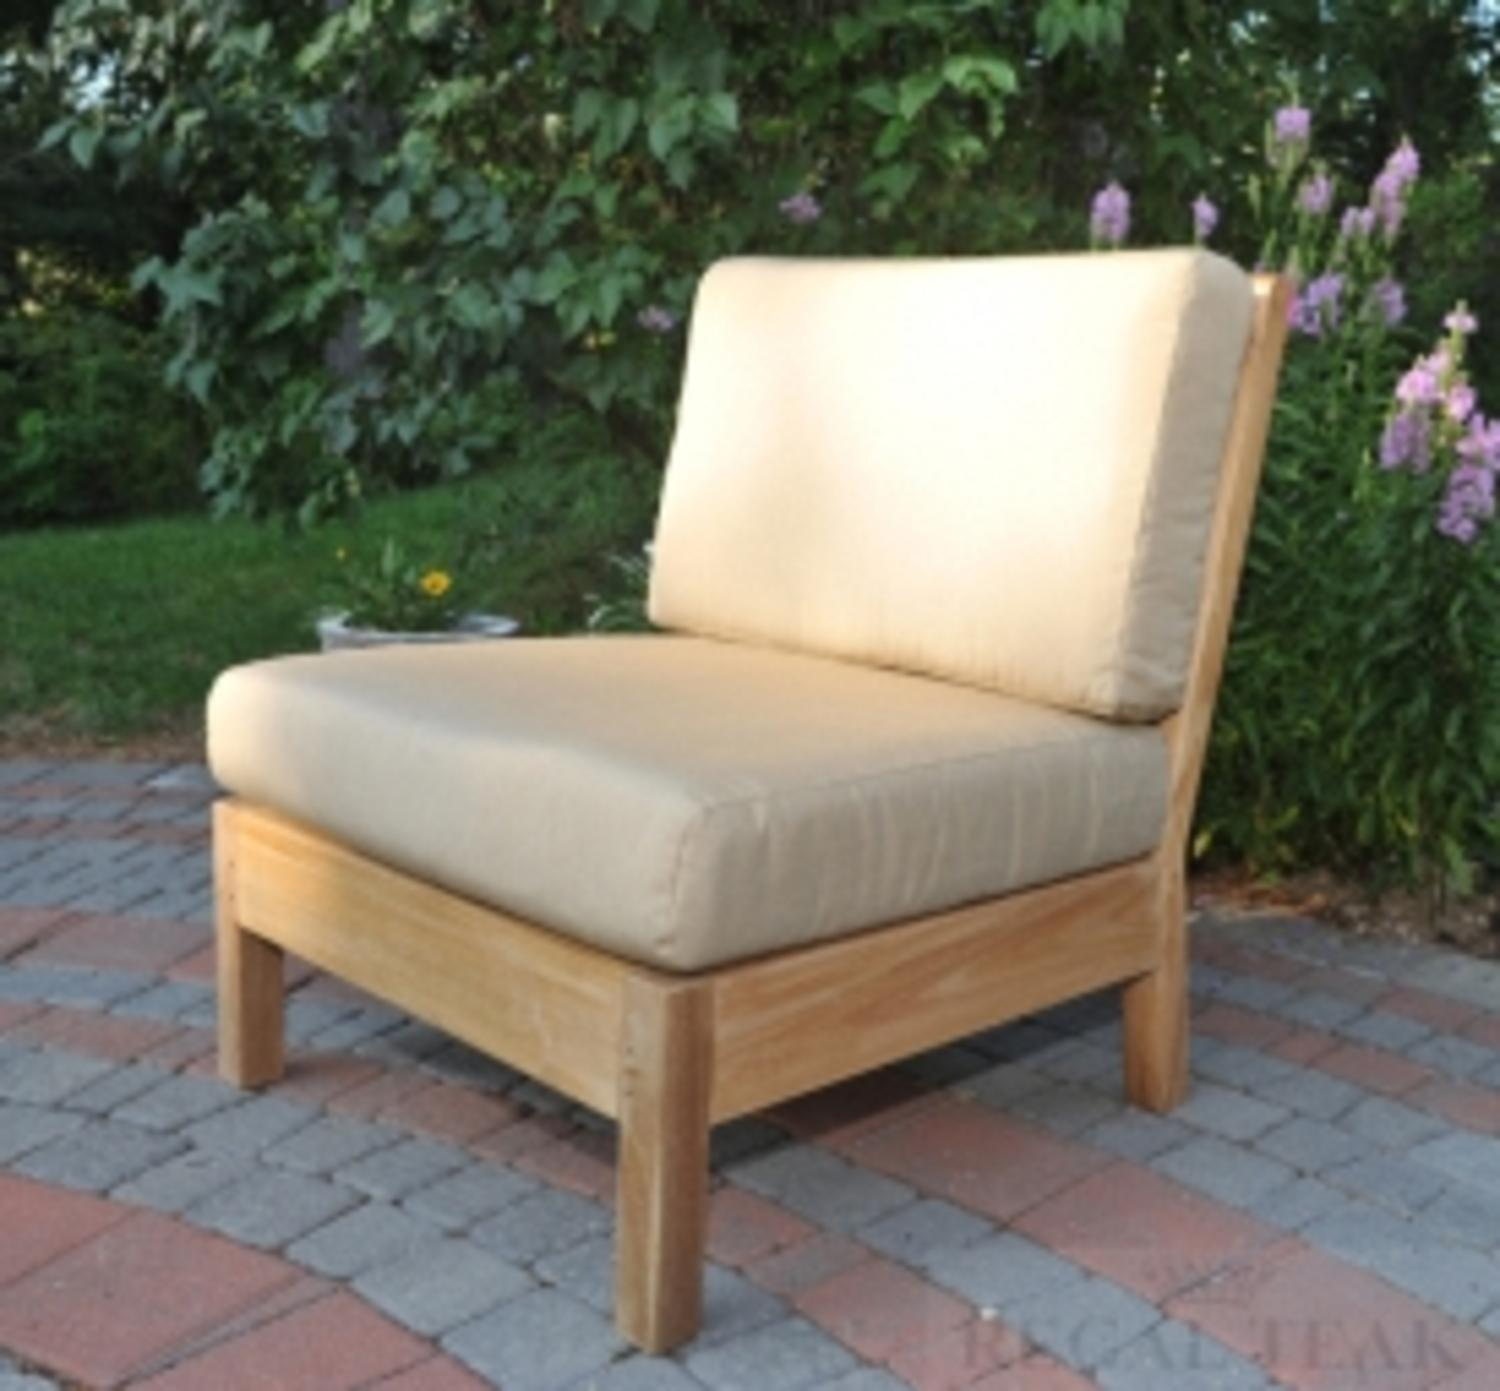 "35"" Natural Teak Sectional Center Seating Outdoor Patio Chair w/ Green Cushions"